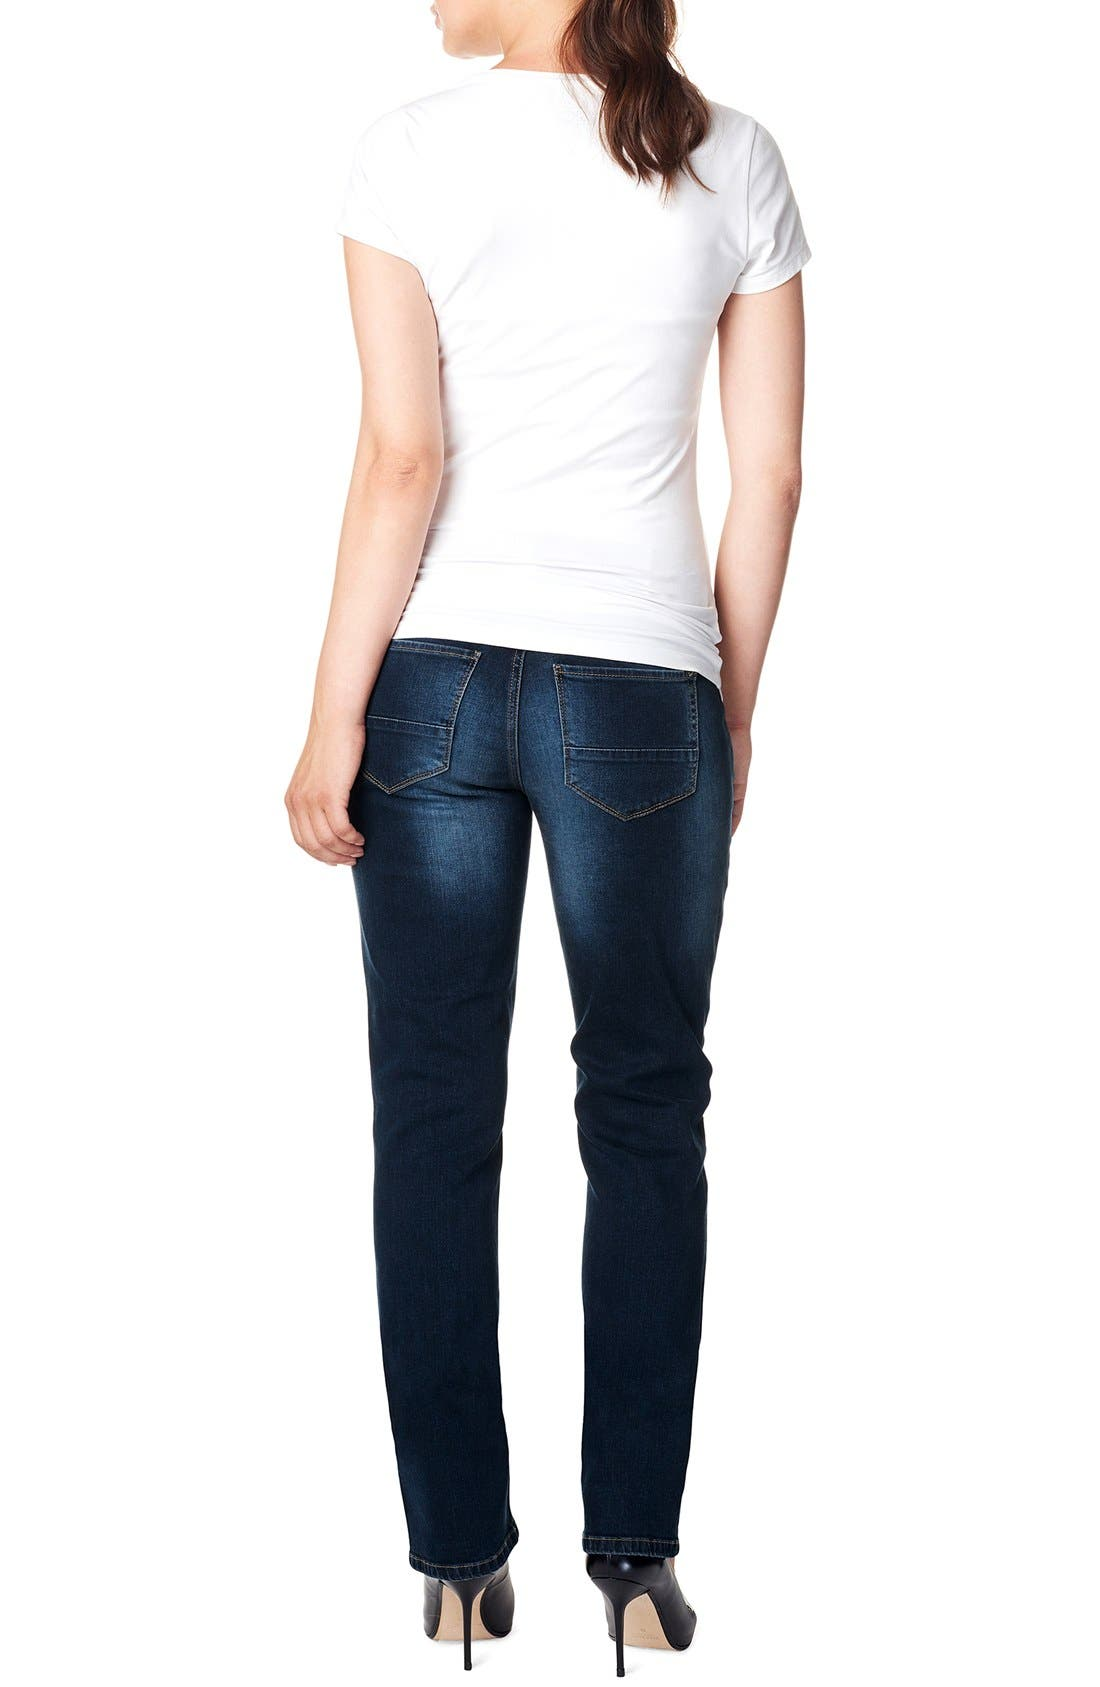 'Mena Comfort' Over the Belly Straight Leg Maternity Jeans,                             Alternate thumbnail 3, color,                             Dark Stone Wash